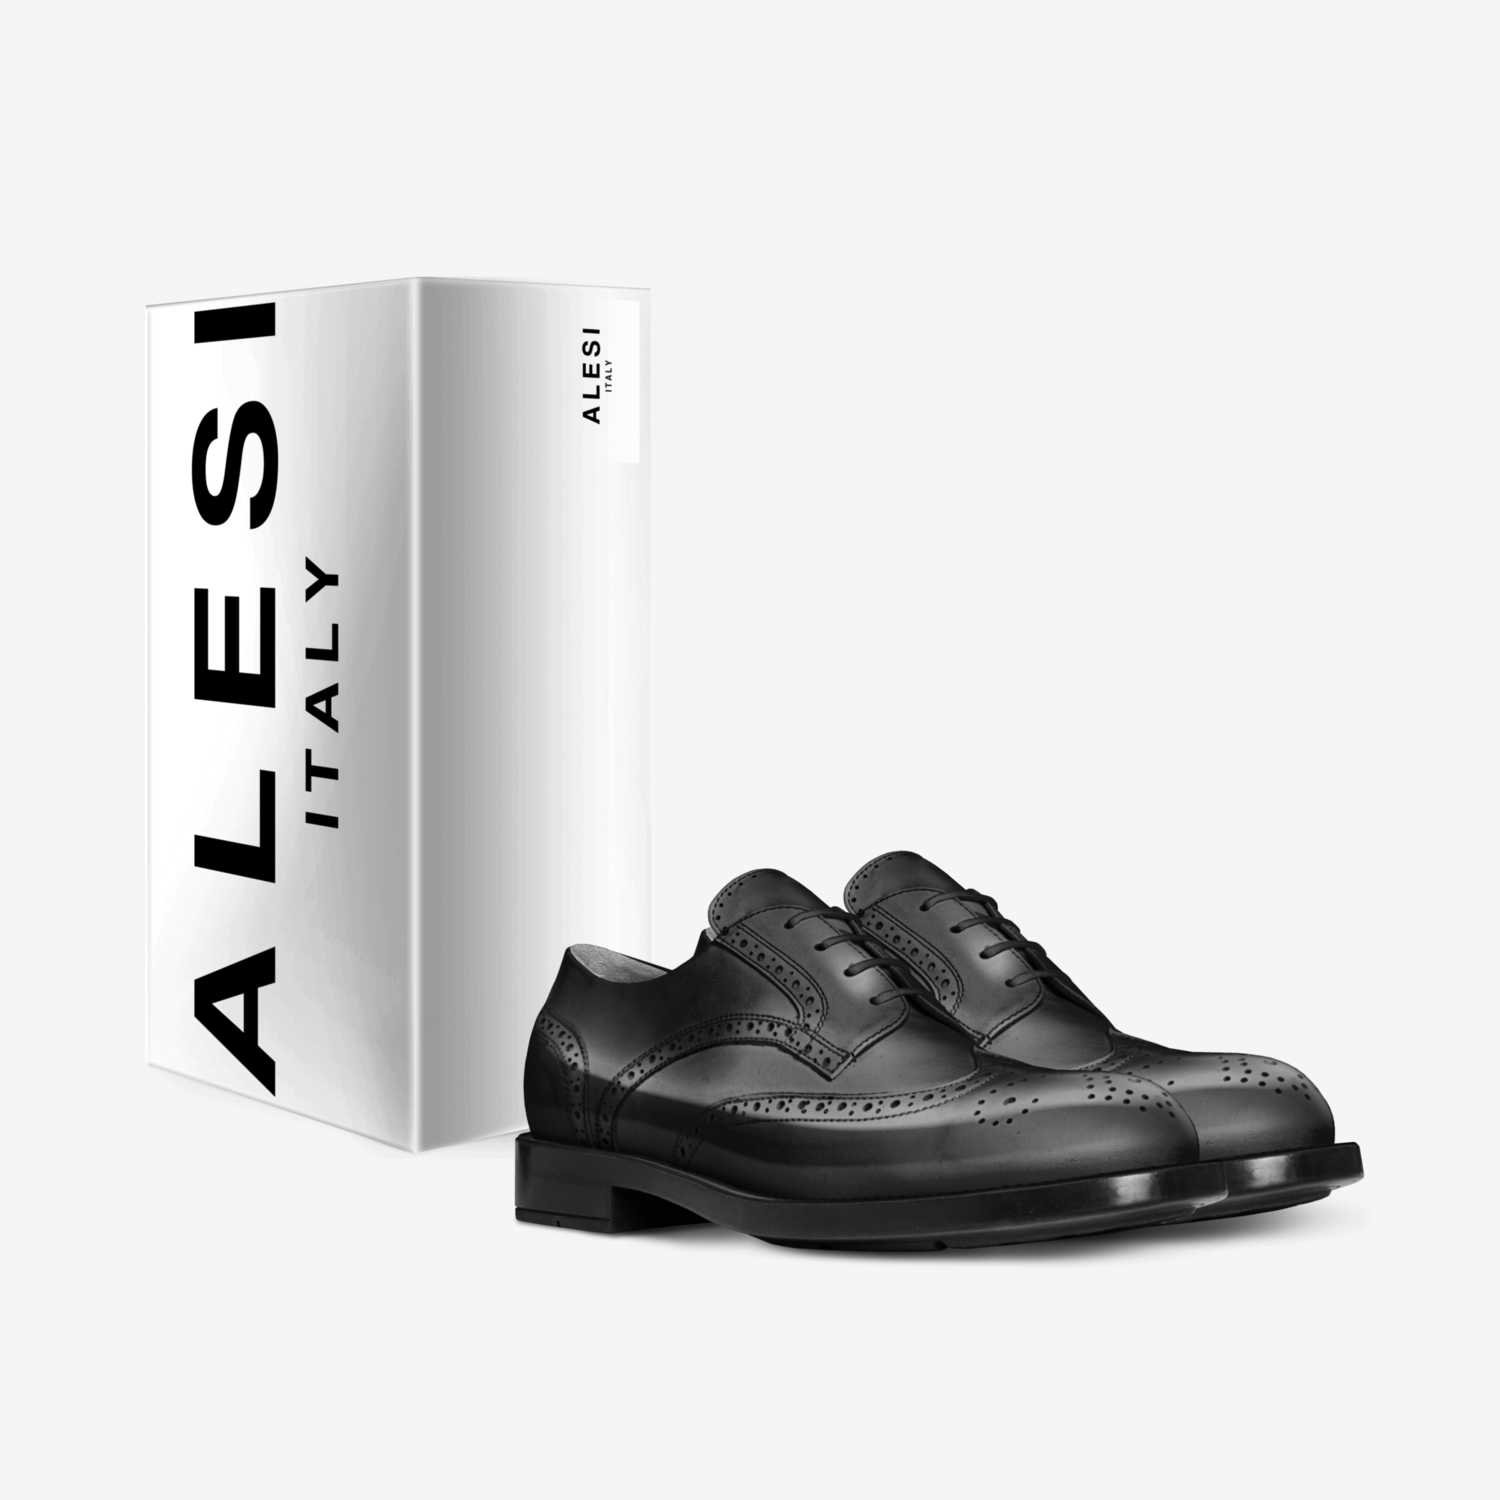 Alesi  custom made in Italy shoes by Lonanthony Parker | Box view